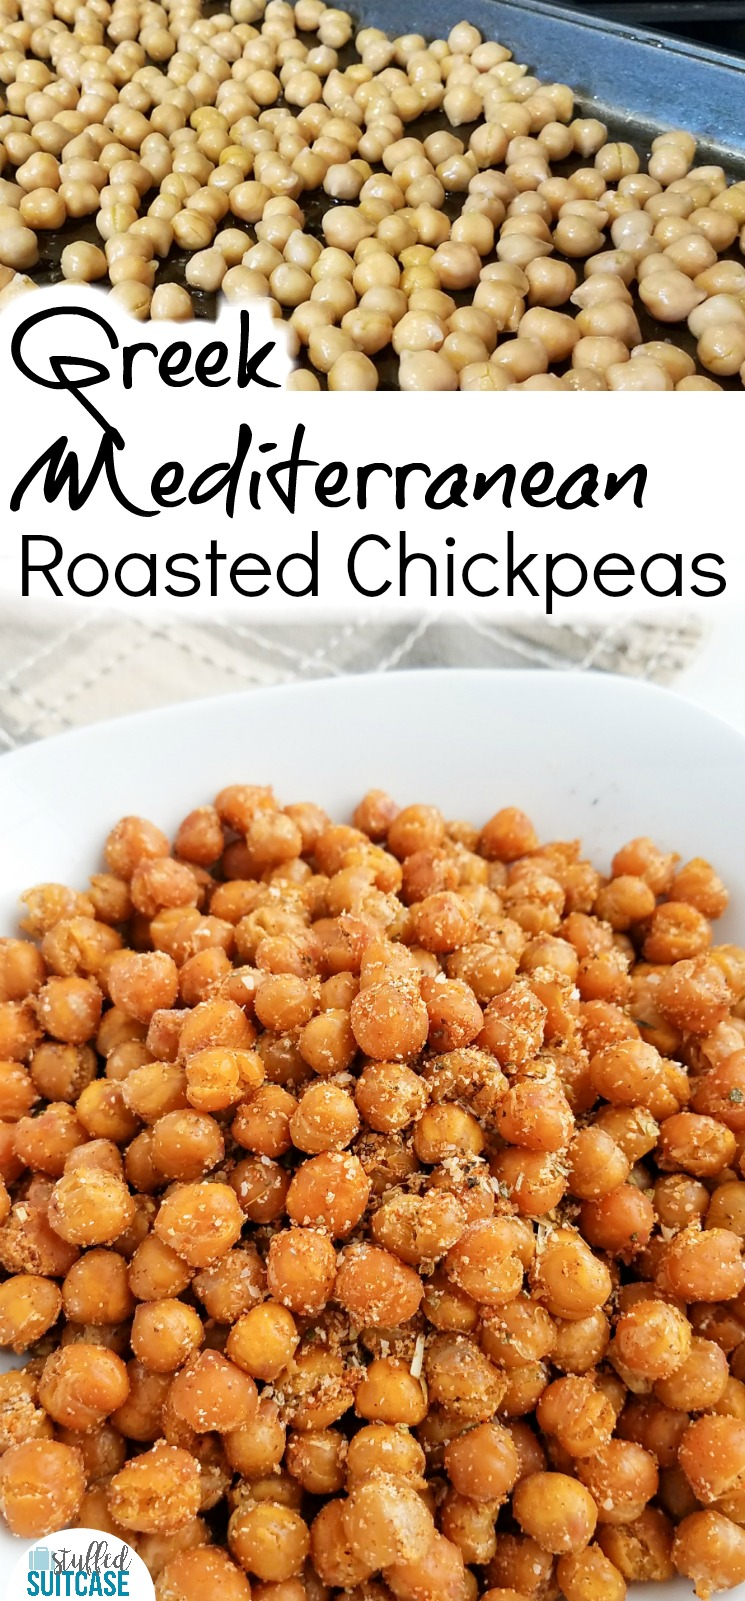 Great snack ideas - roasted chickpeas recipe | snacks for kids | travel snacks | roasted garbanzo beans